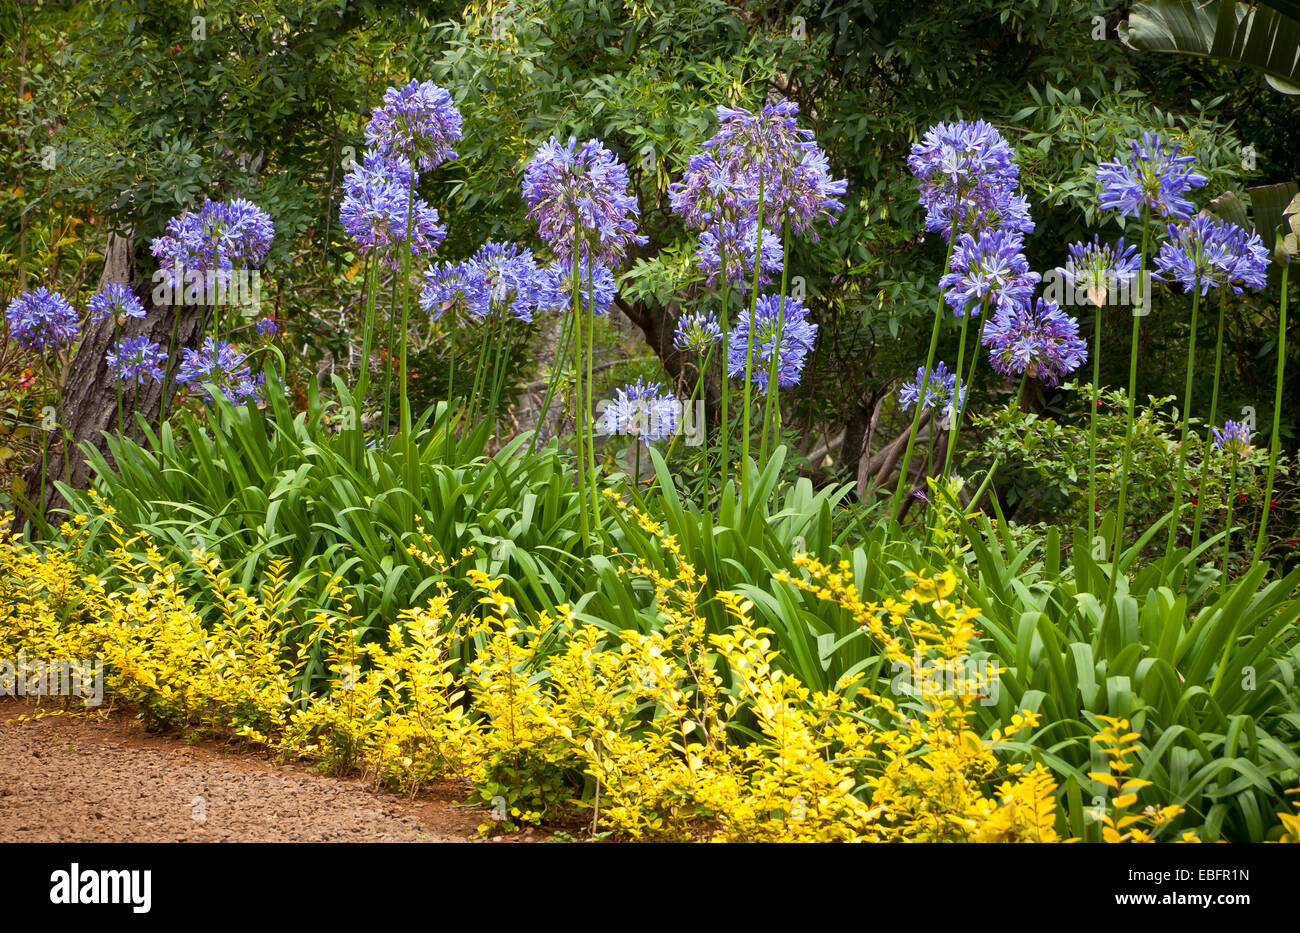 Blue African Lily (Agapanthus Africanus) flowers in the garden - Stock Image